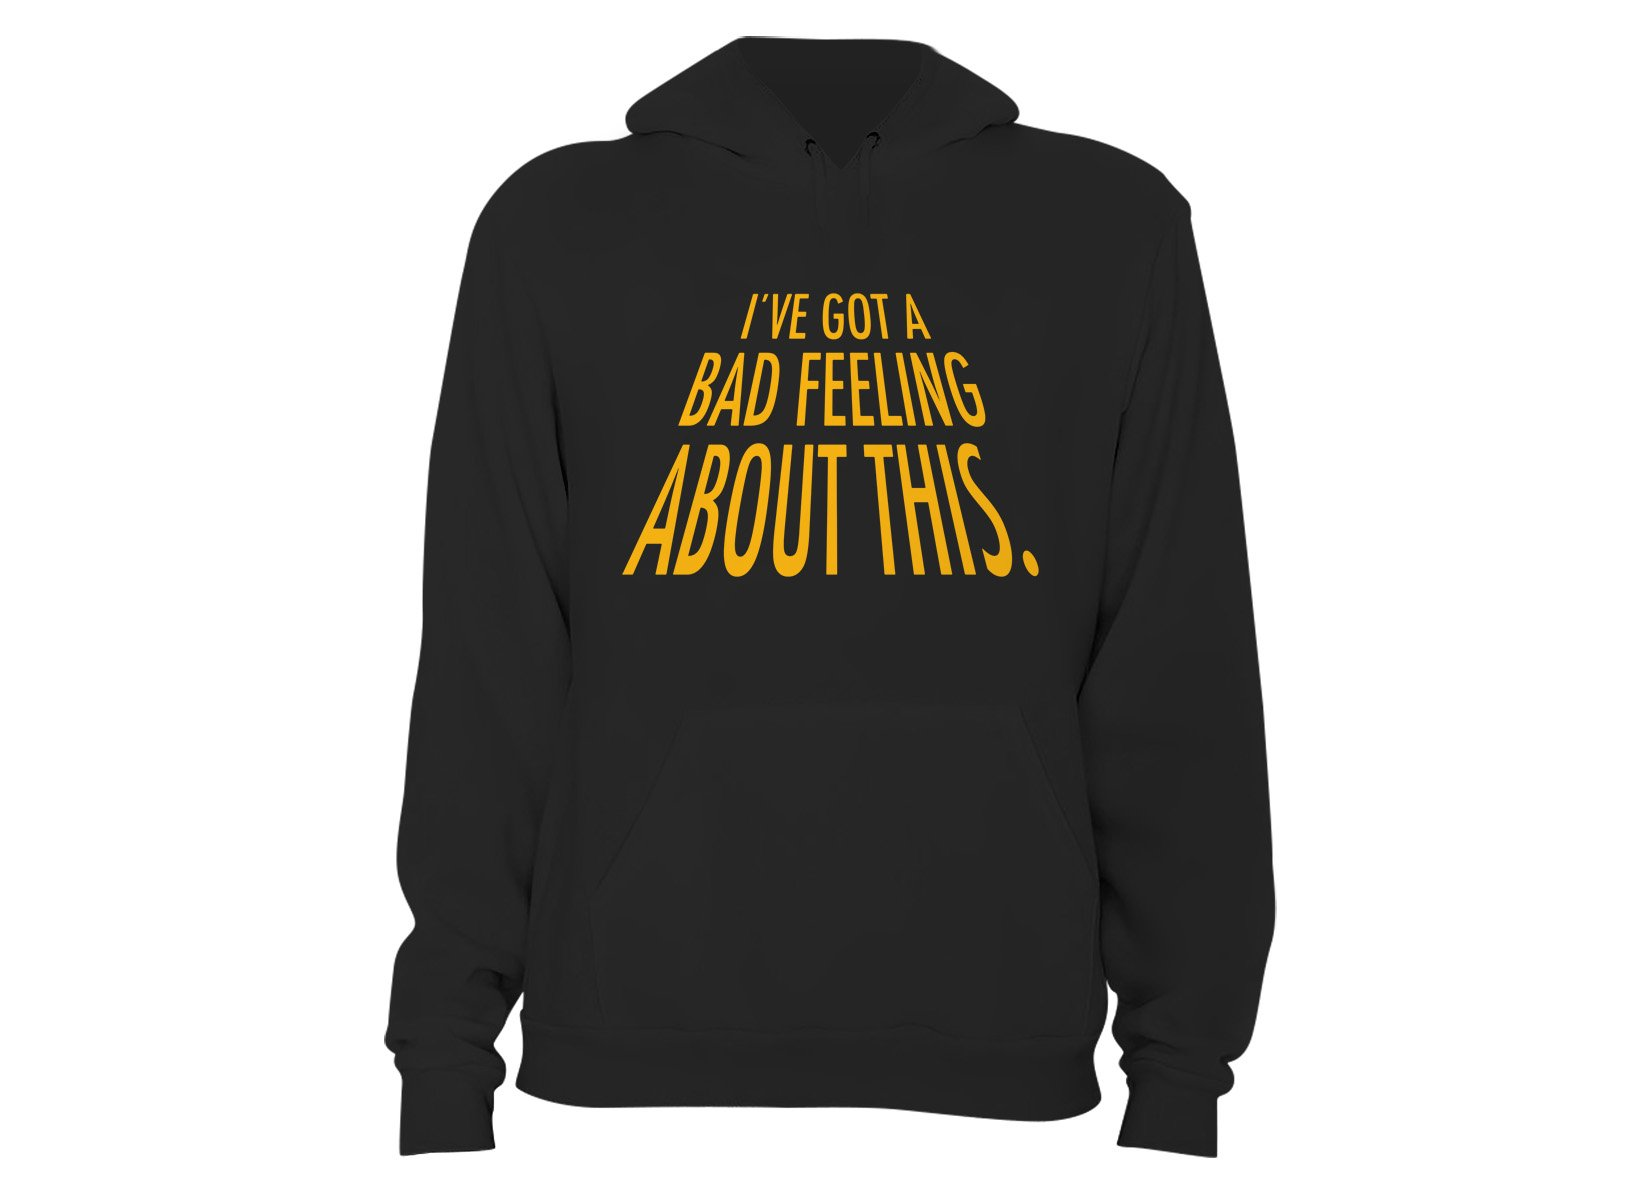 I've Got A Bad Feeling About This on Hoodie